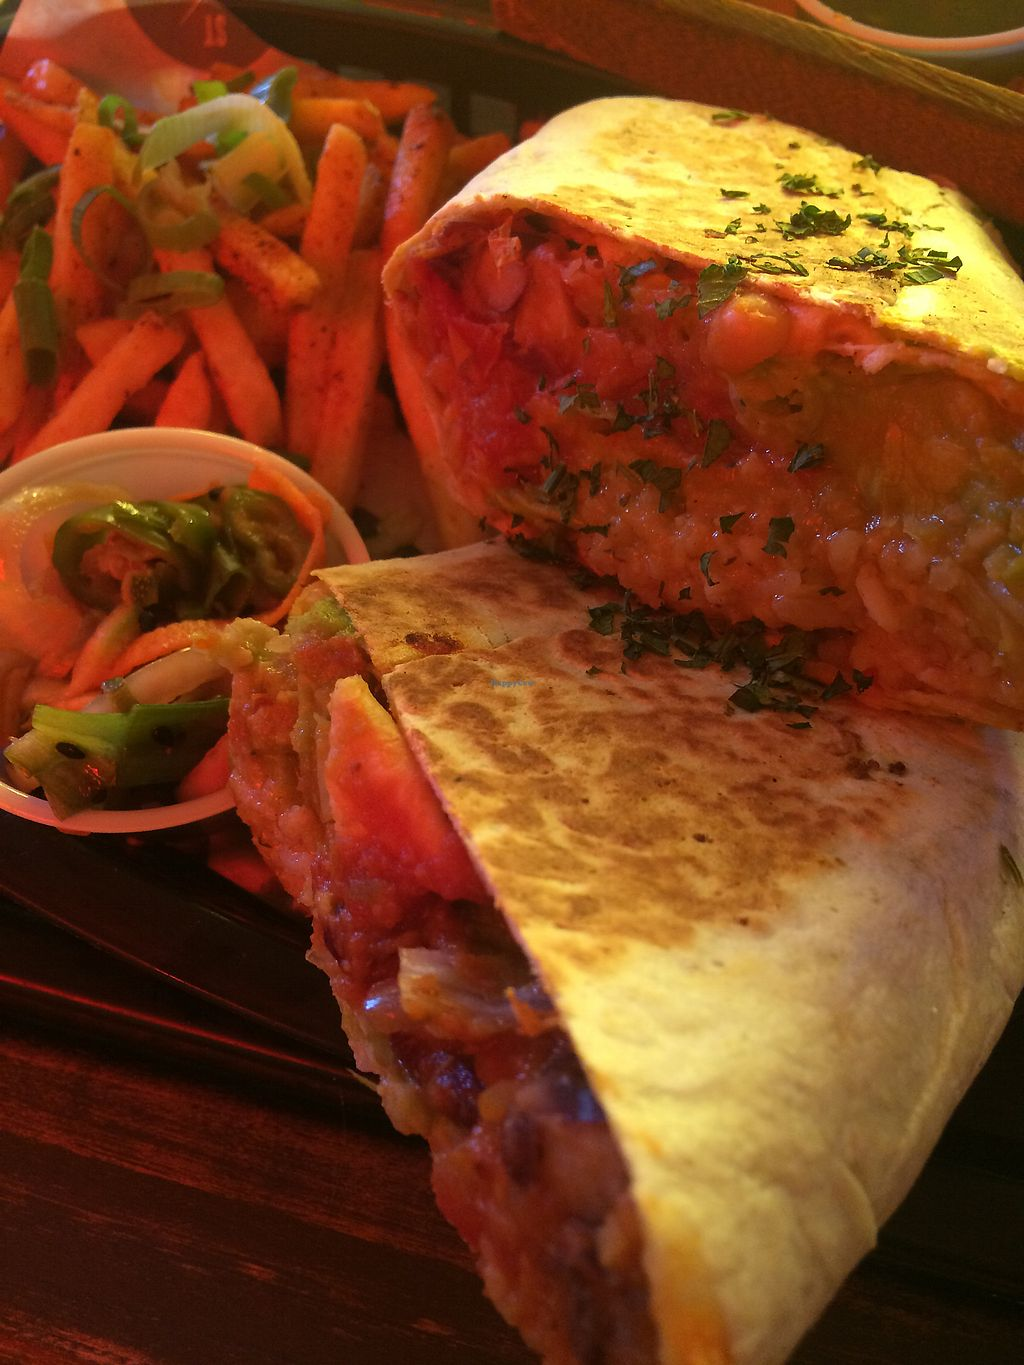 """Photo of STREET Tarporley  by <a href=""""/members/profile/Aj88"""">Aj88</a> <br/>Ban burrito which was amazing! <br/> November 15, 2017  - <a href='/contact/abuse/image/95617/325919'>Report</a>"""